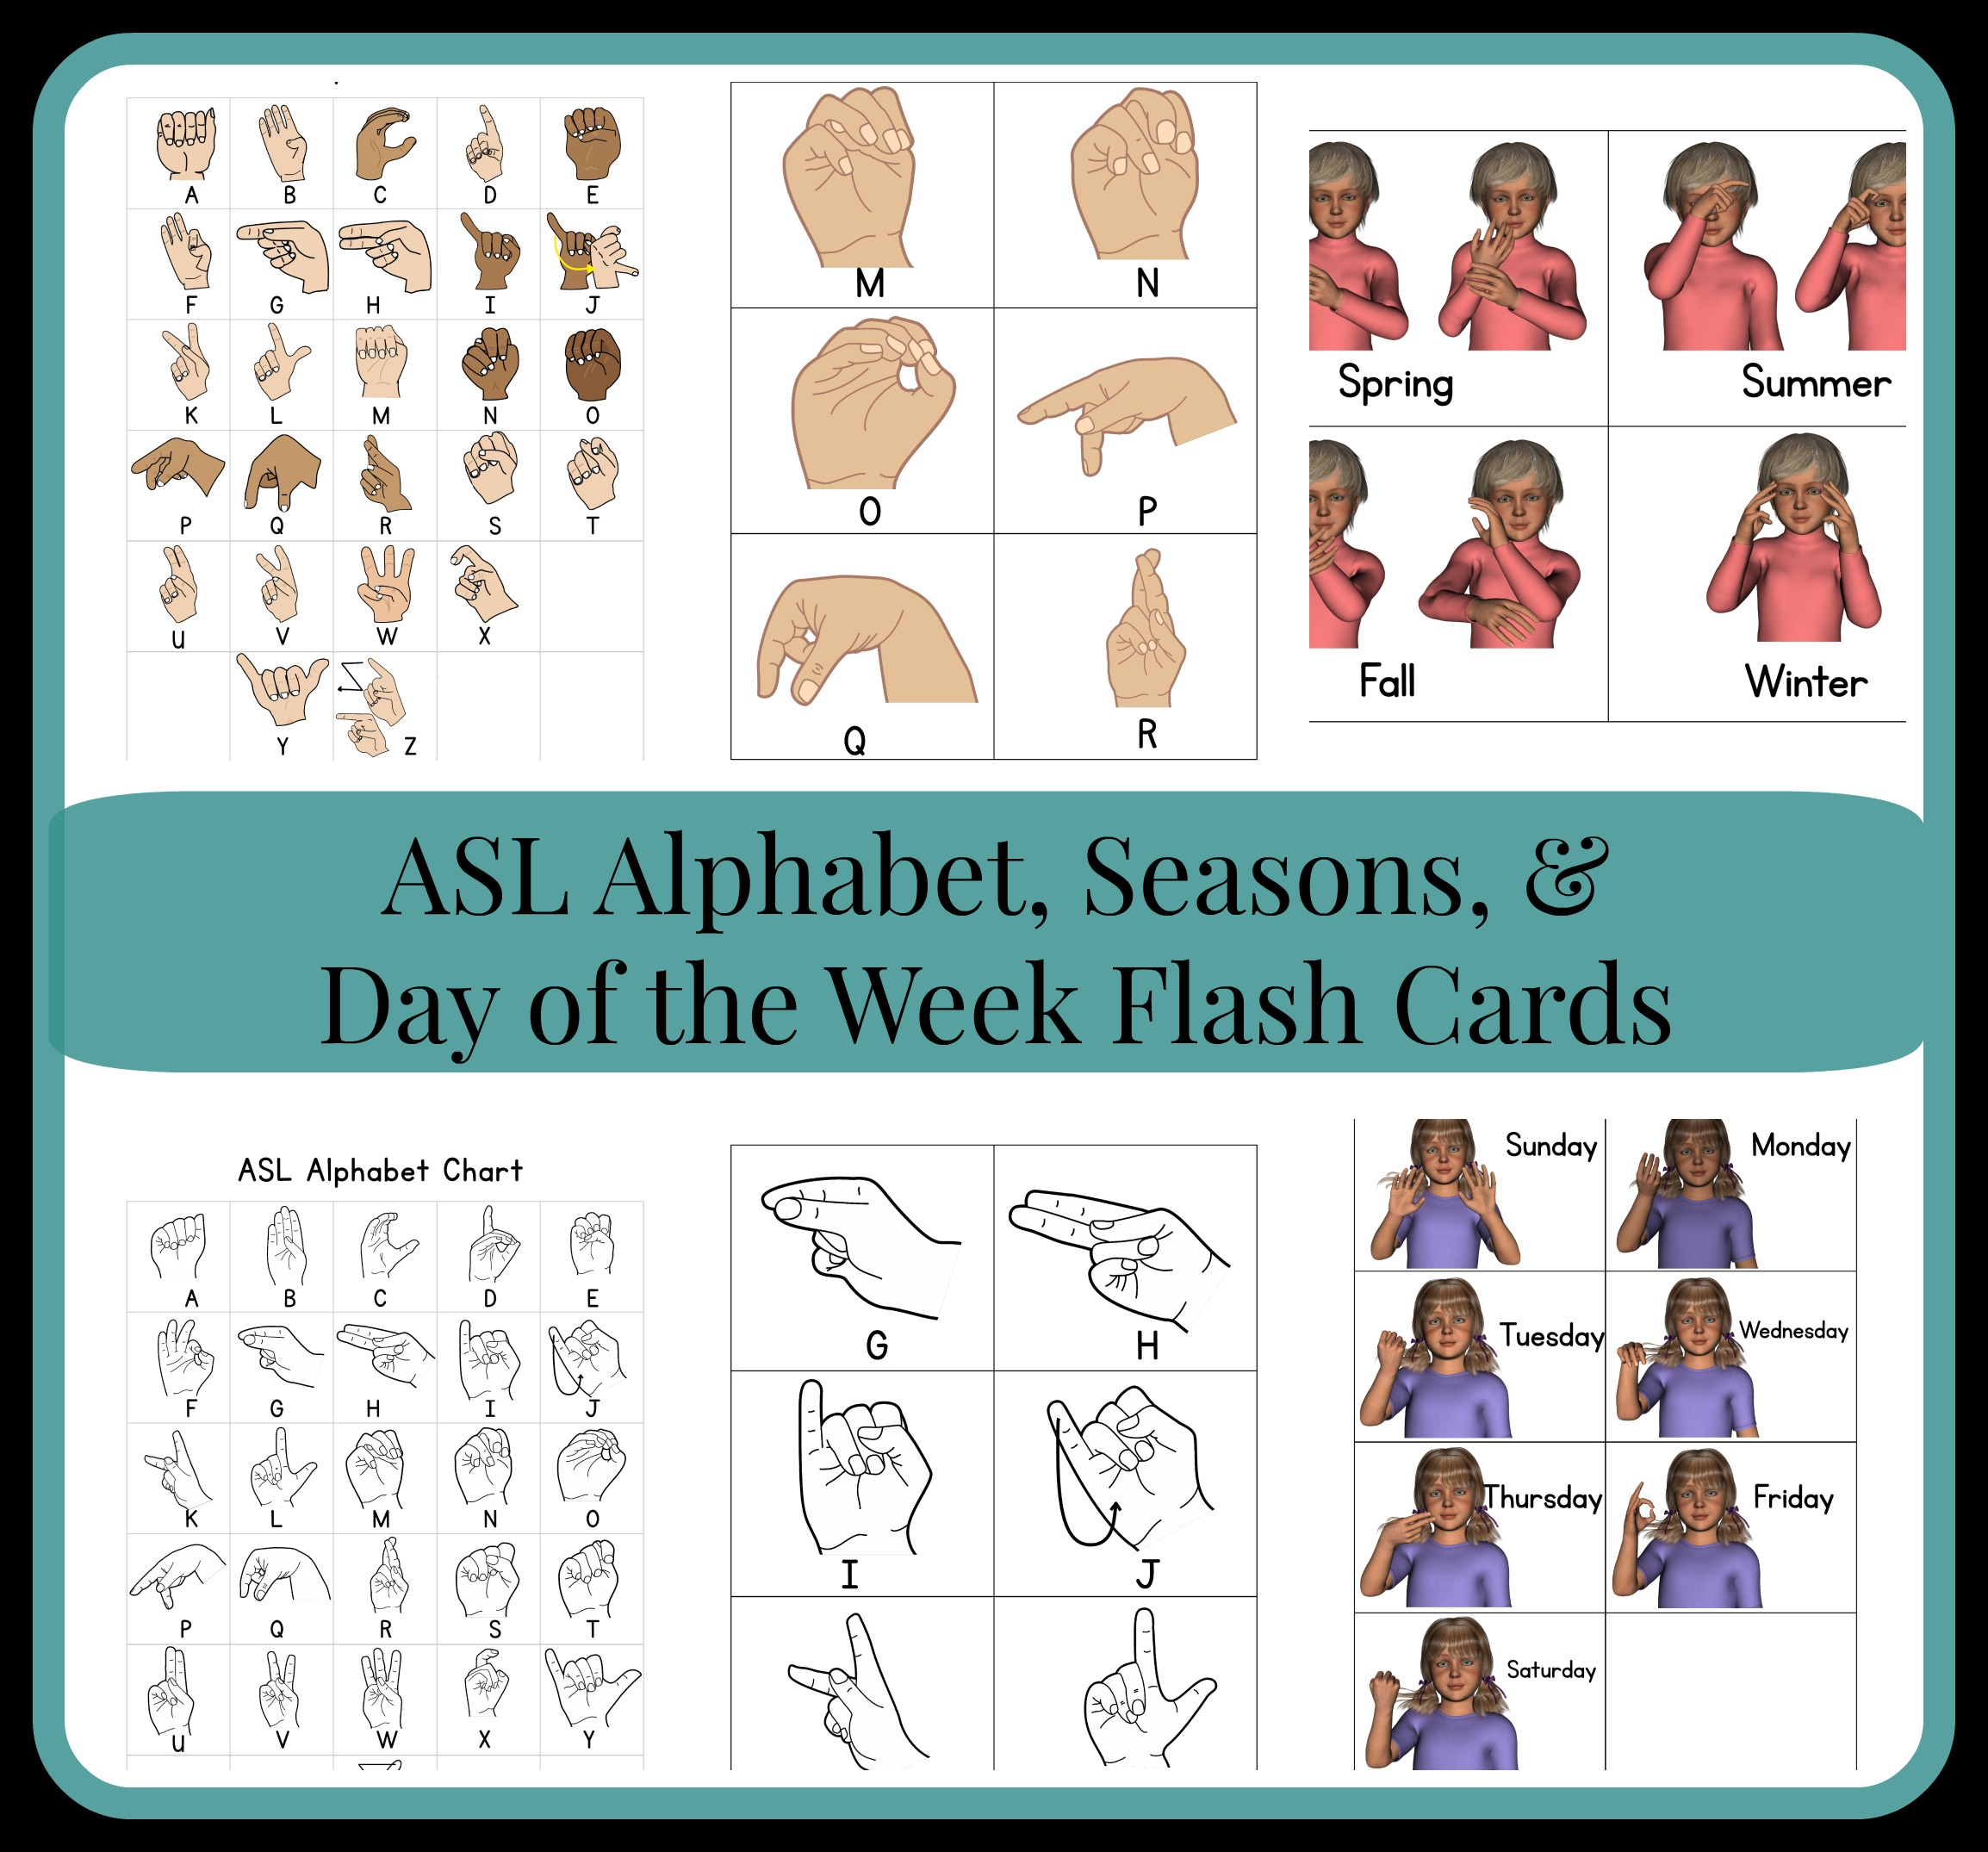 image regarding Asl Flash Cards Printable named ASL Flash Playing cards As They Improve Up